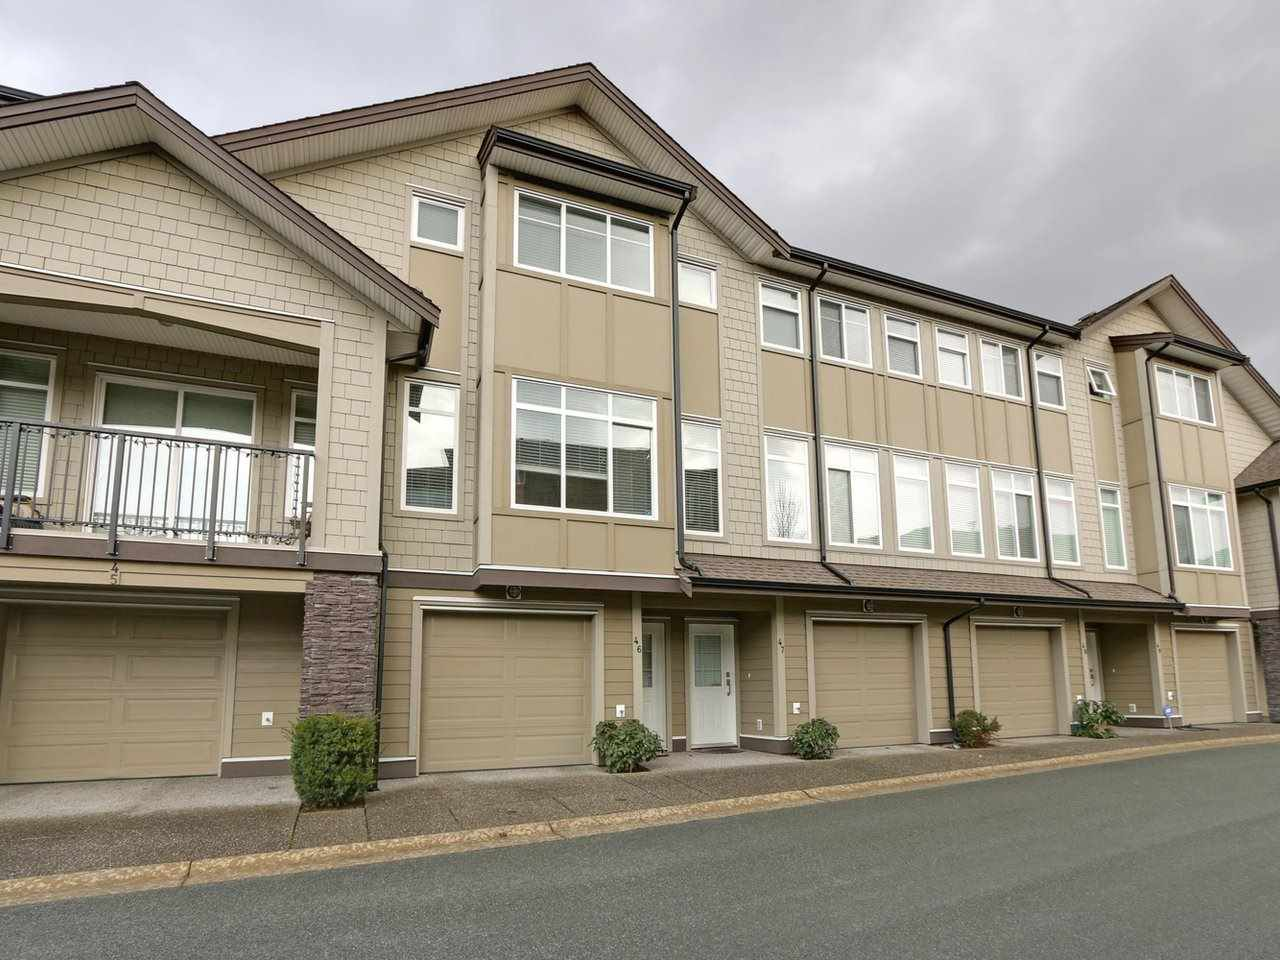 "Main Photo: 46 22865 TELOSKY Avenue in Maple Ridge: East Central Townhouse for sale in ""Windsong"" : MLS®# R2232795"